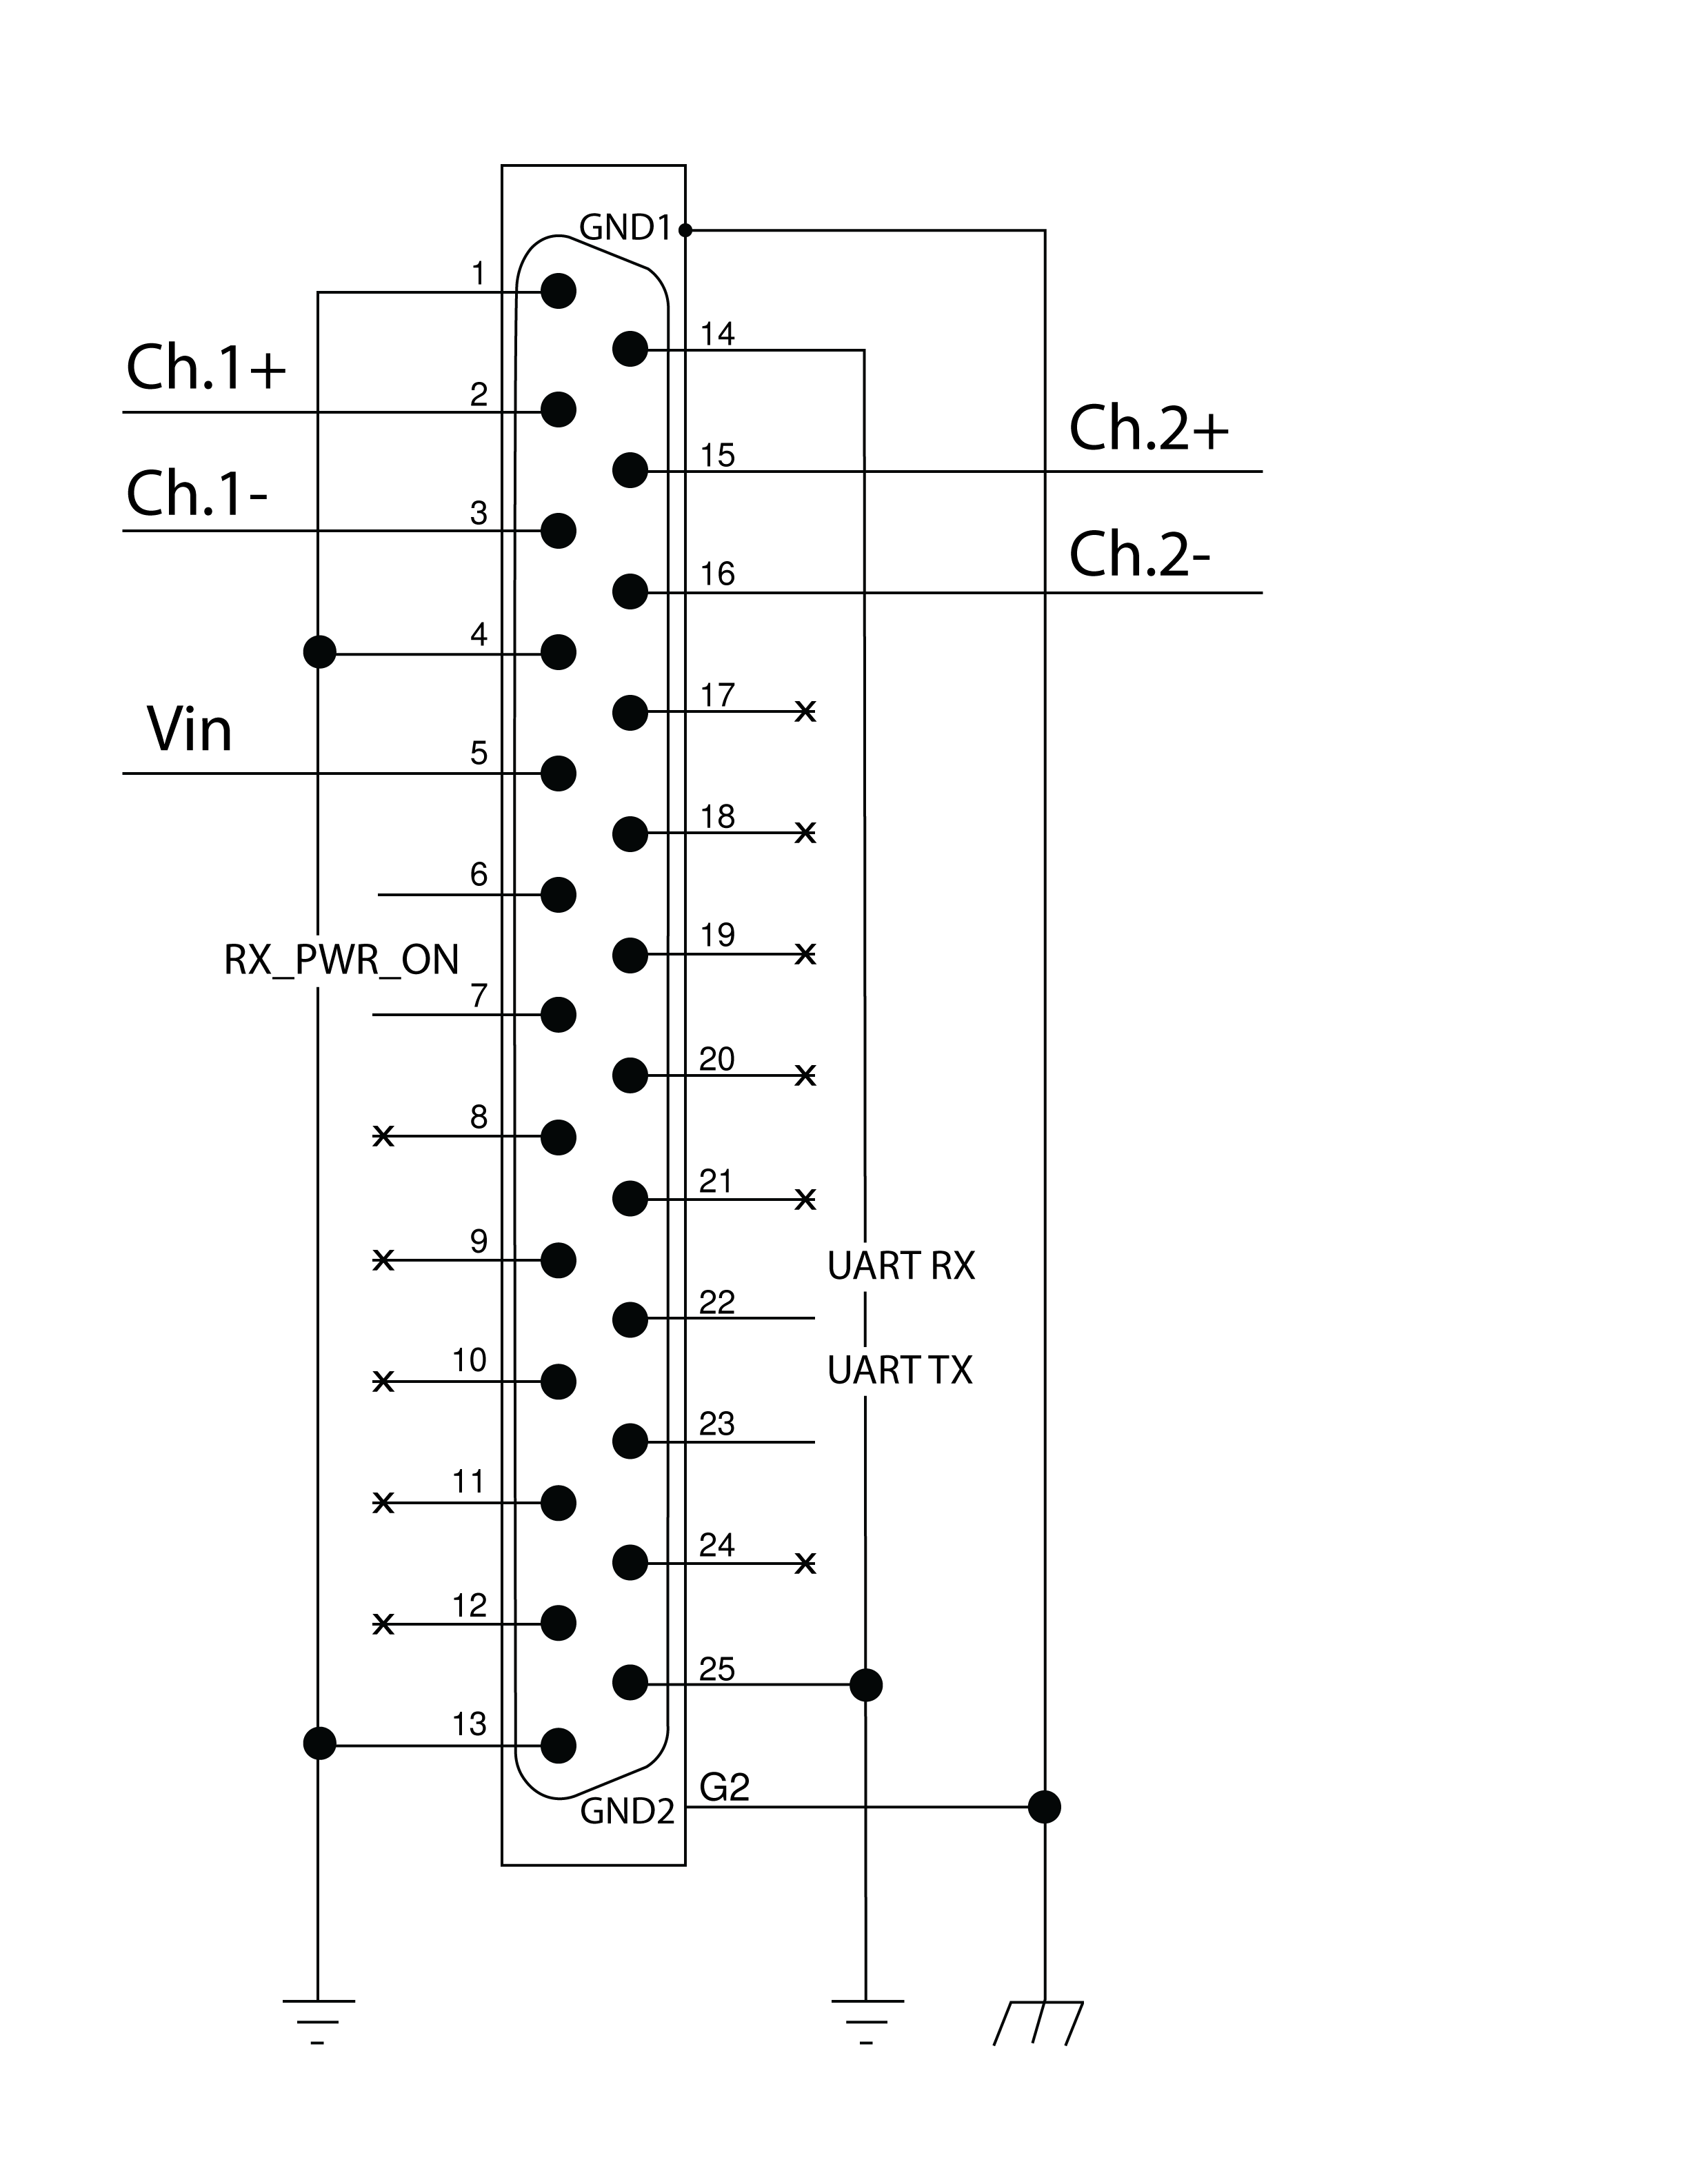 Pinout diagram for DB25 connector.